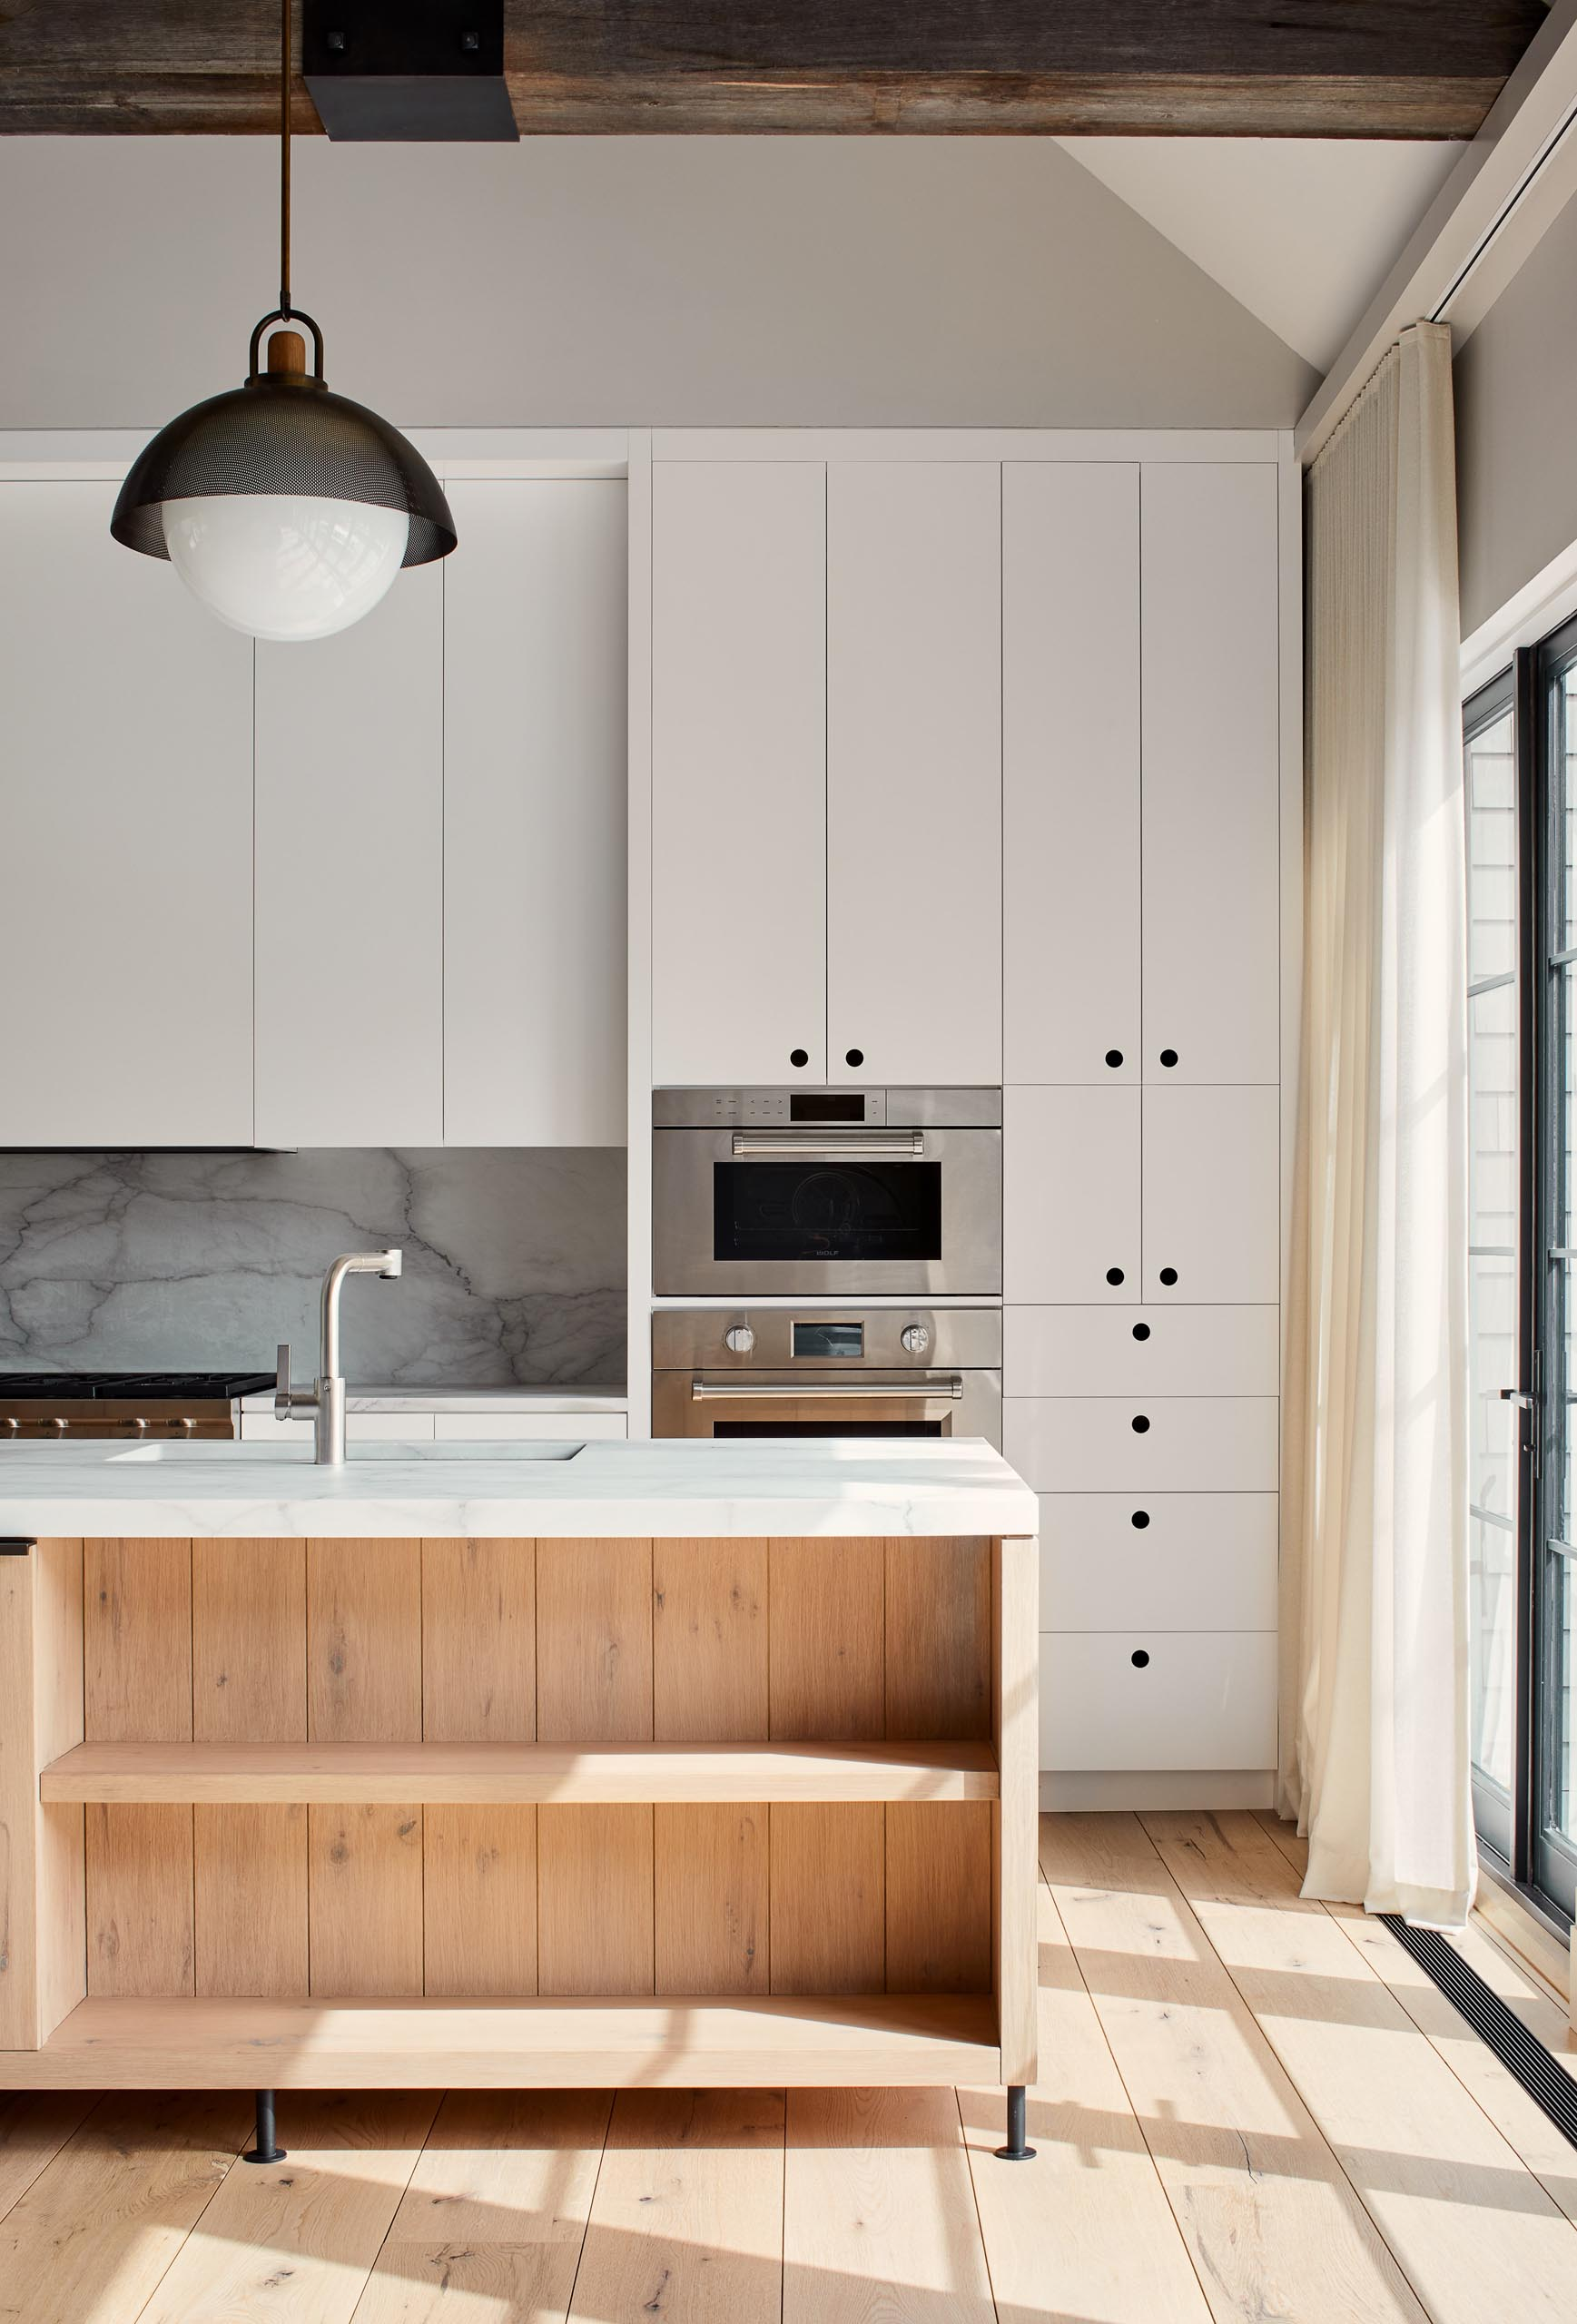 The cabinets in this kitchen are hardware free and include round recessed finger pulls that have been painted black inside.